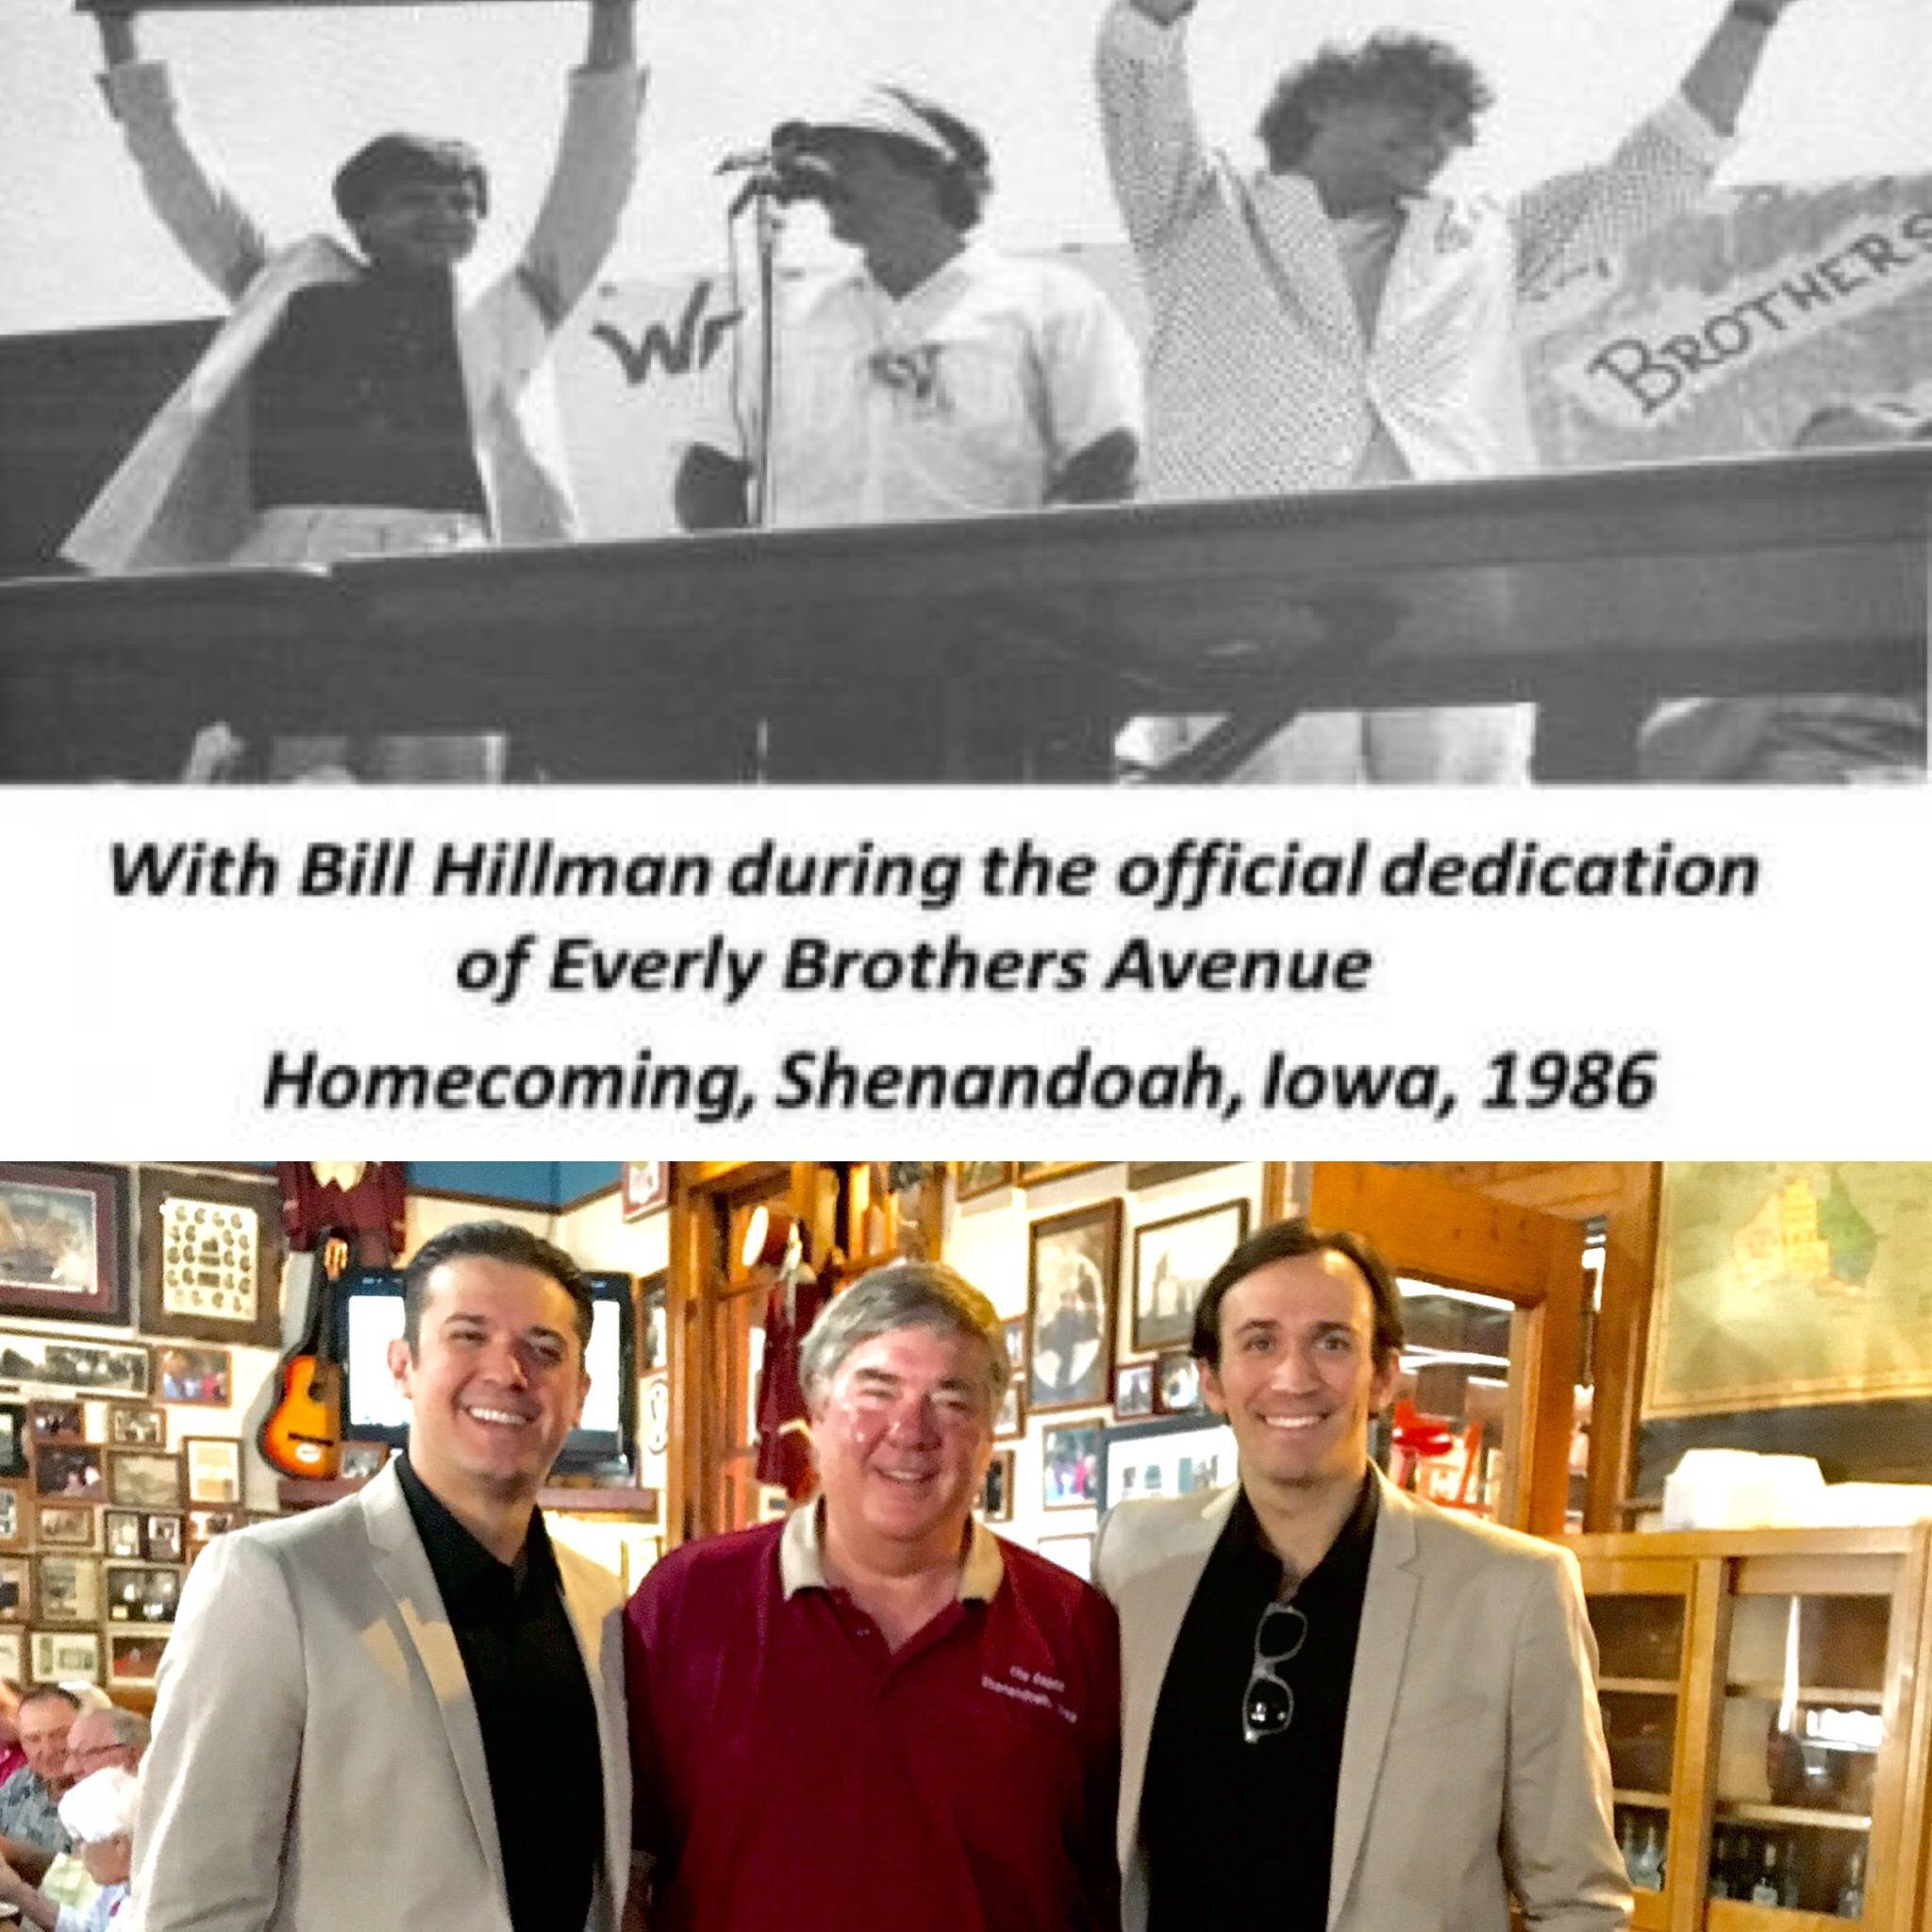 Zach and Dylan with Bill Hillman in The Depot just before all the festivities began, 2017